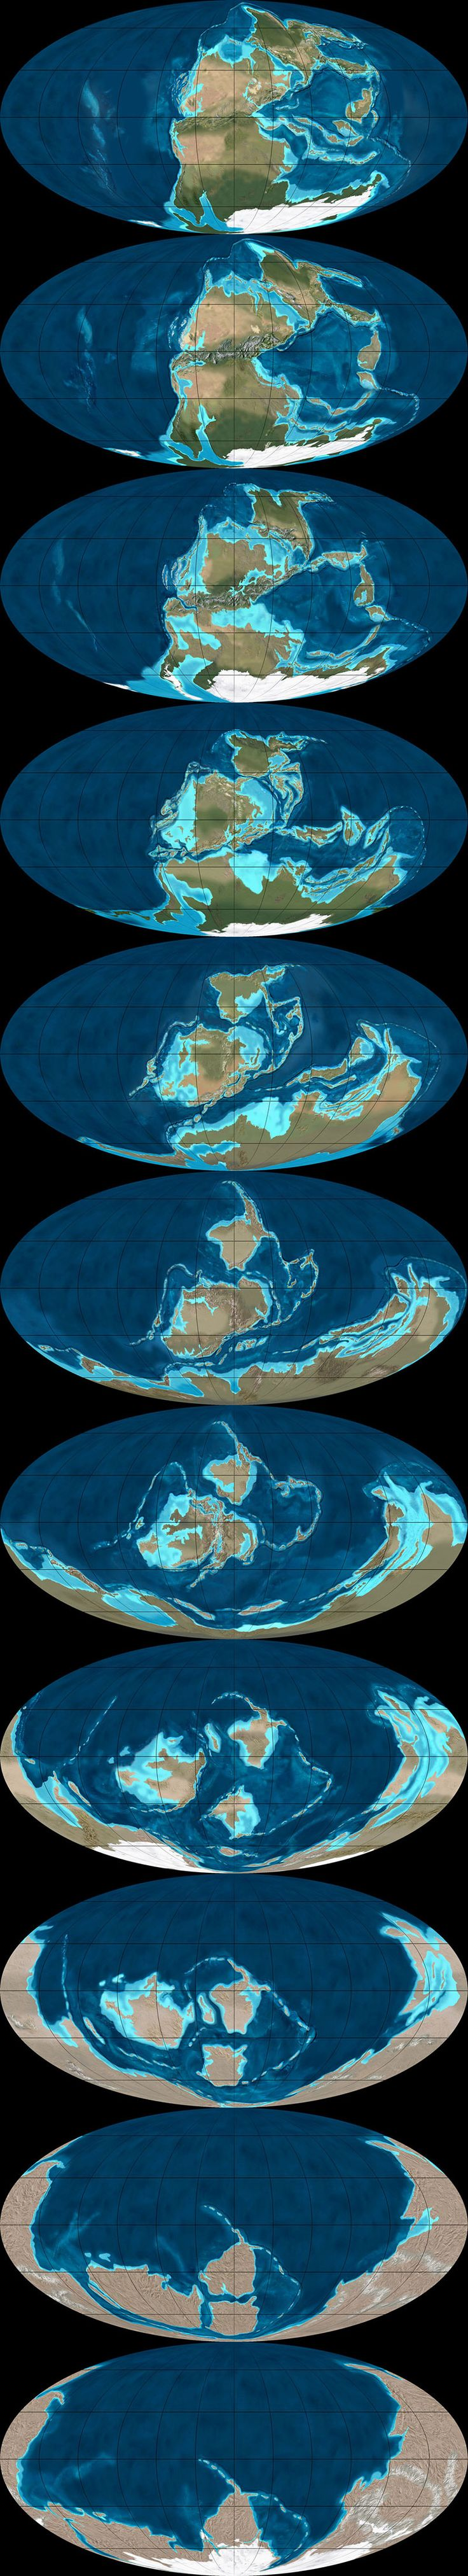 This final of the three global sequences shows the continents drifting apart, in reverse, from 260 million years ago to 600 million years ago. There was still nearly 4 billion years of tectonic evolution prior to where these maps begin. They were mapped using the Mollweide projection, and, in all cases, are by Ron Blakey.